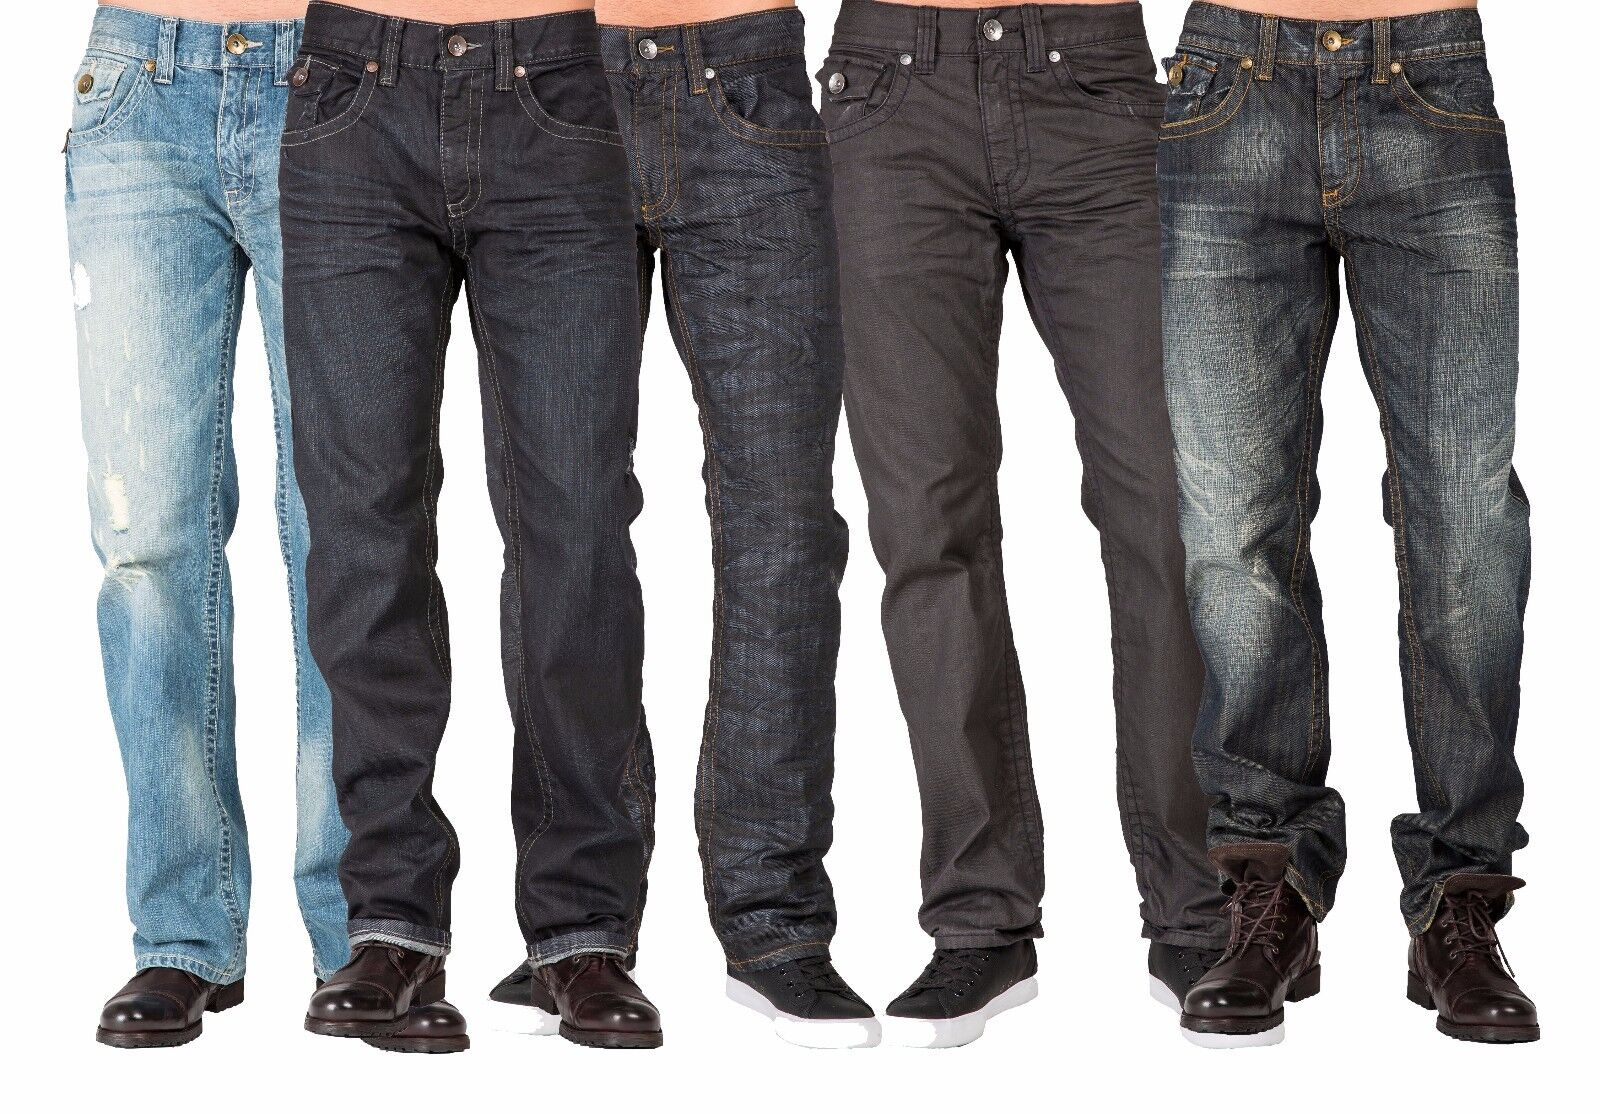 Level 7 men's Relaxed Straight Leg Premium denim Jeans Dark Vintage Hand Sanding